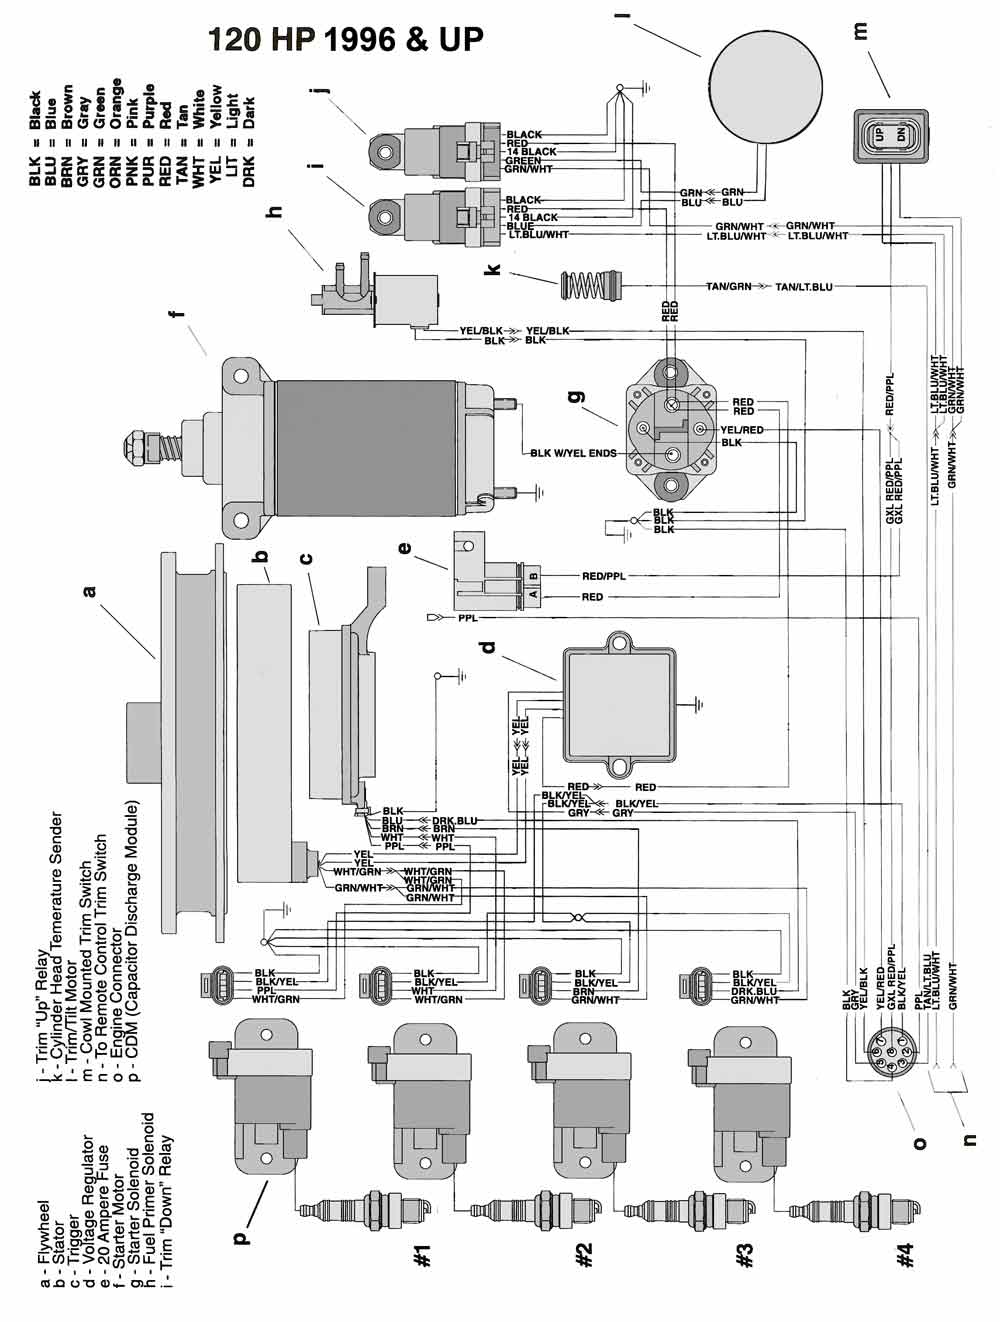 hight resolution of 70 hp johnson outboard wiring diagram mastertech marine evinrude 1959 40 hp johnson outboard diagrams moreover nissan wiring diagrams